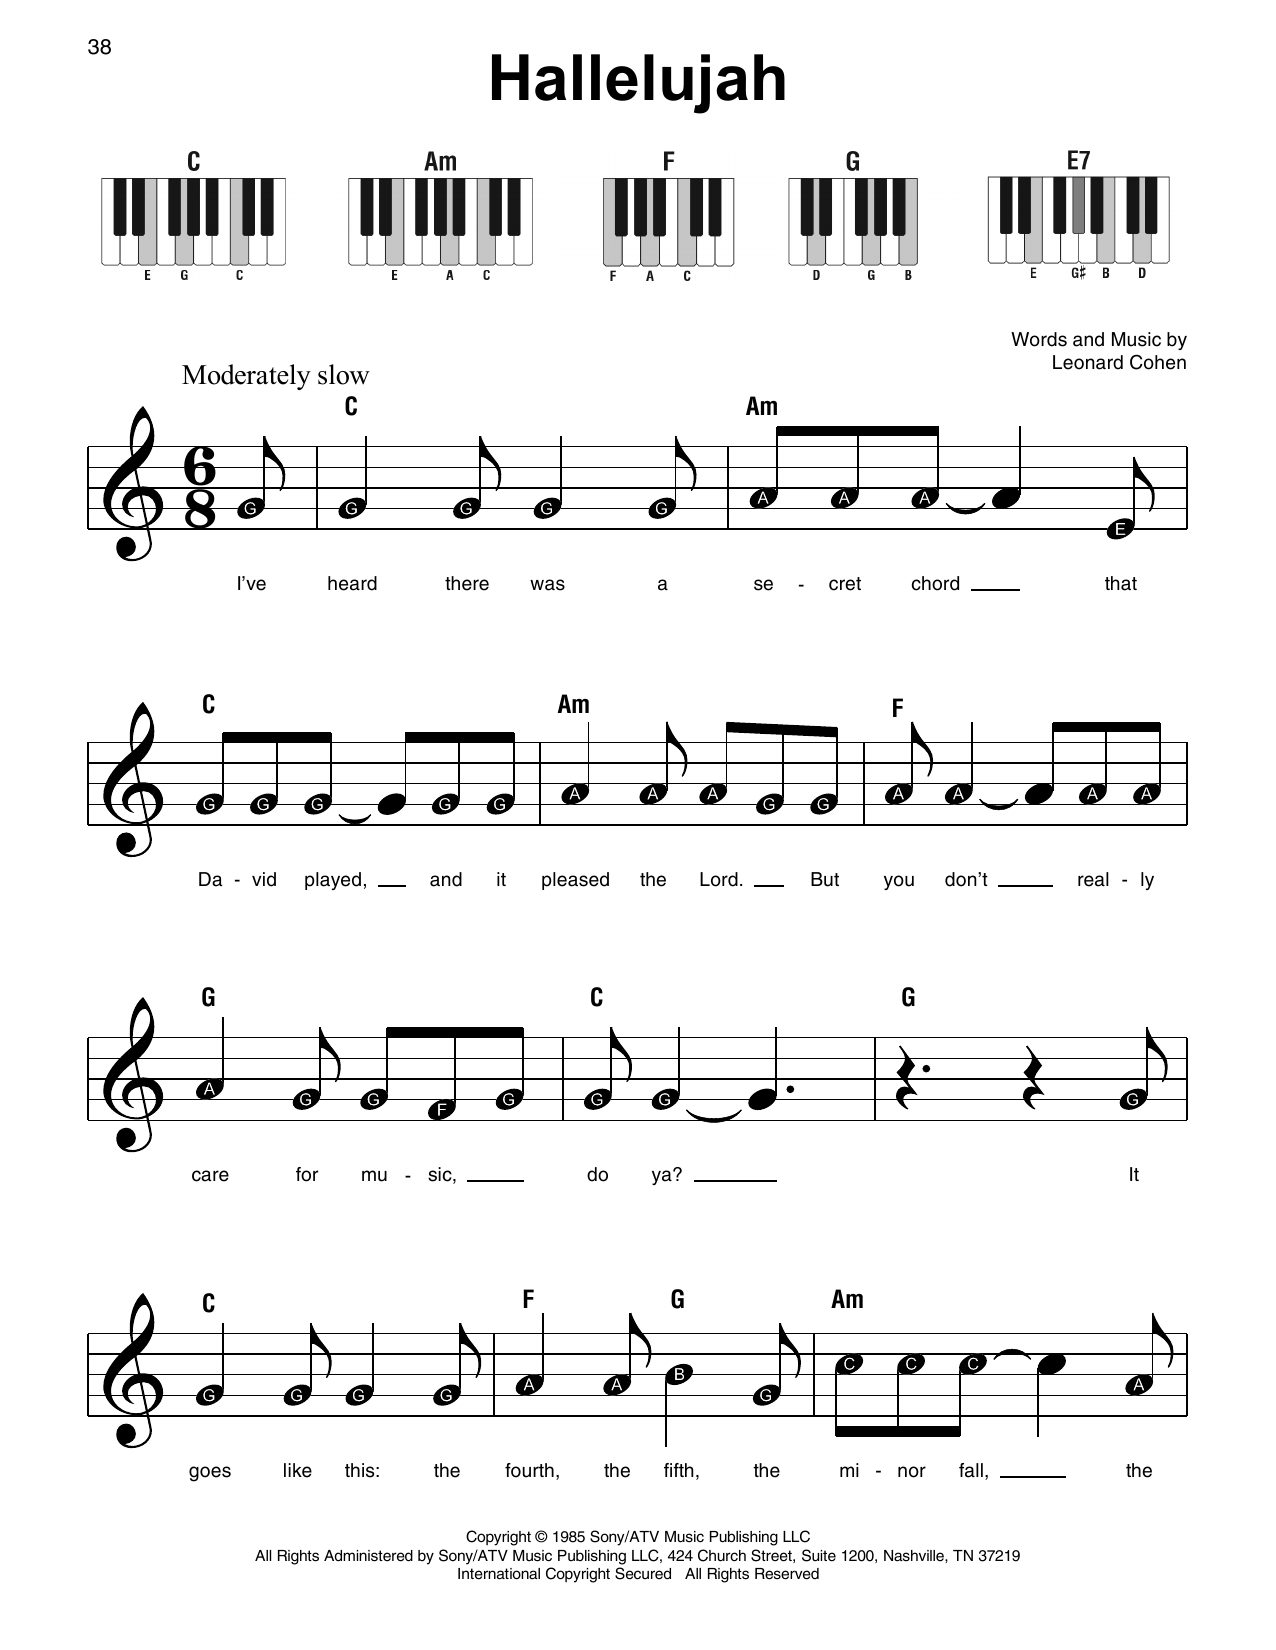 Image Result For Hallelujah Piano Sheet Music Easy | Keyboard Sheet - Hallelujah Sheet Music Piano Free Printable